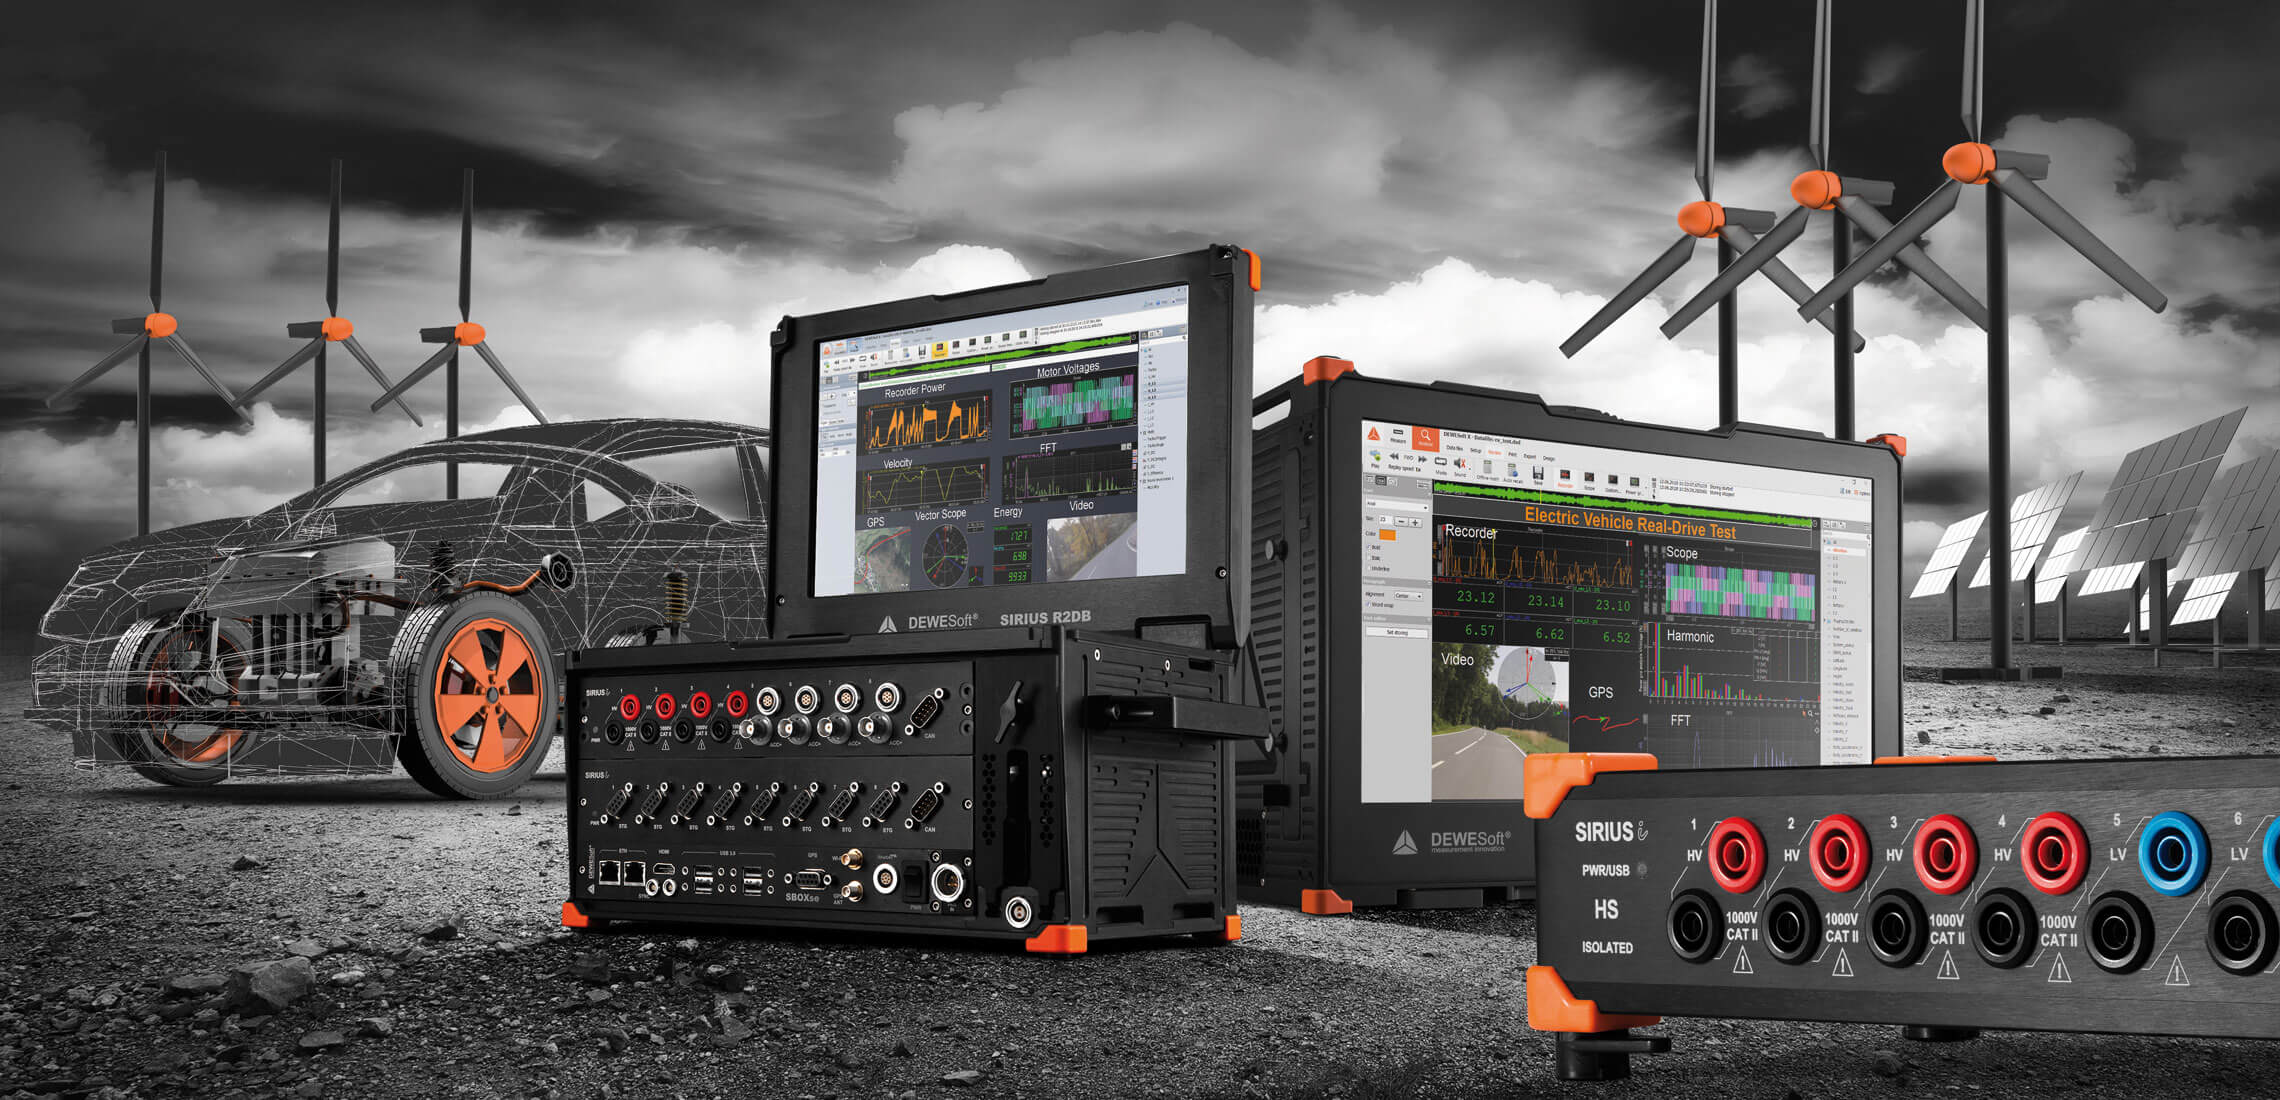 Power Analysis and Power Quality Solutions from Dewesoft